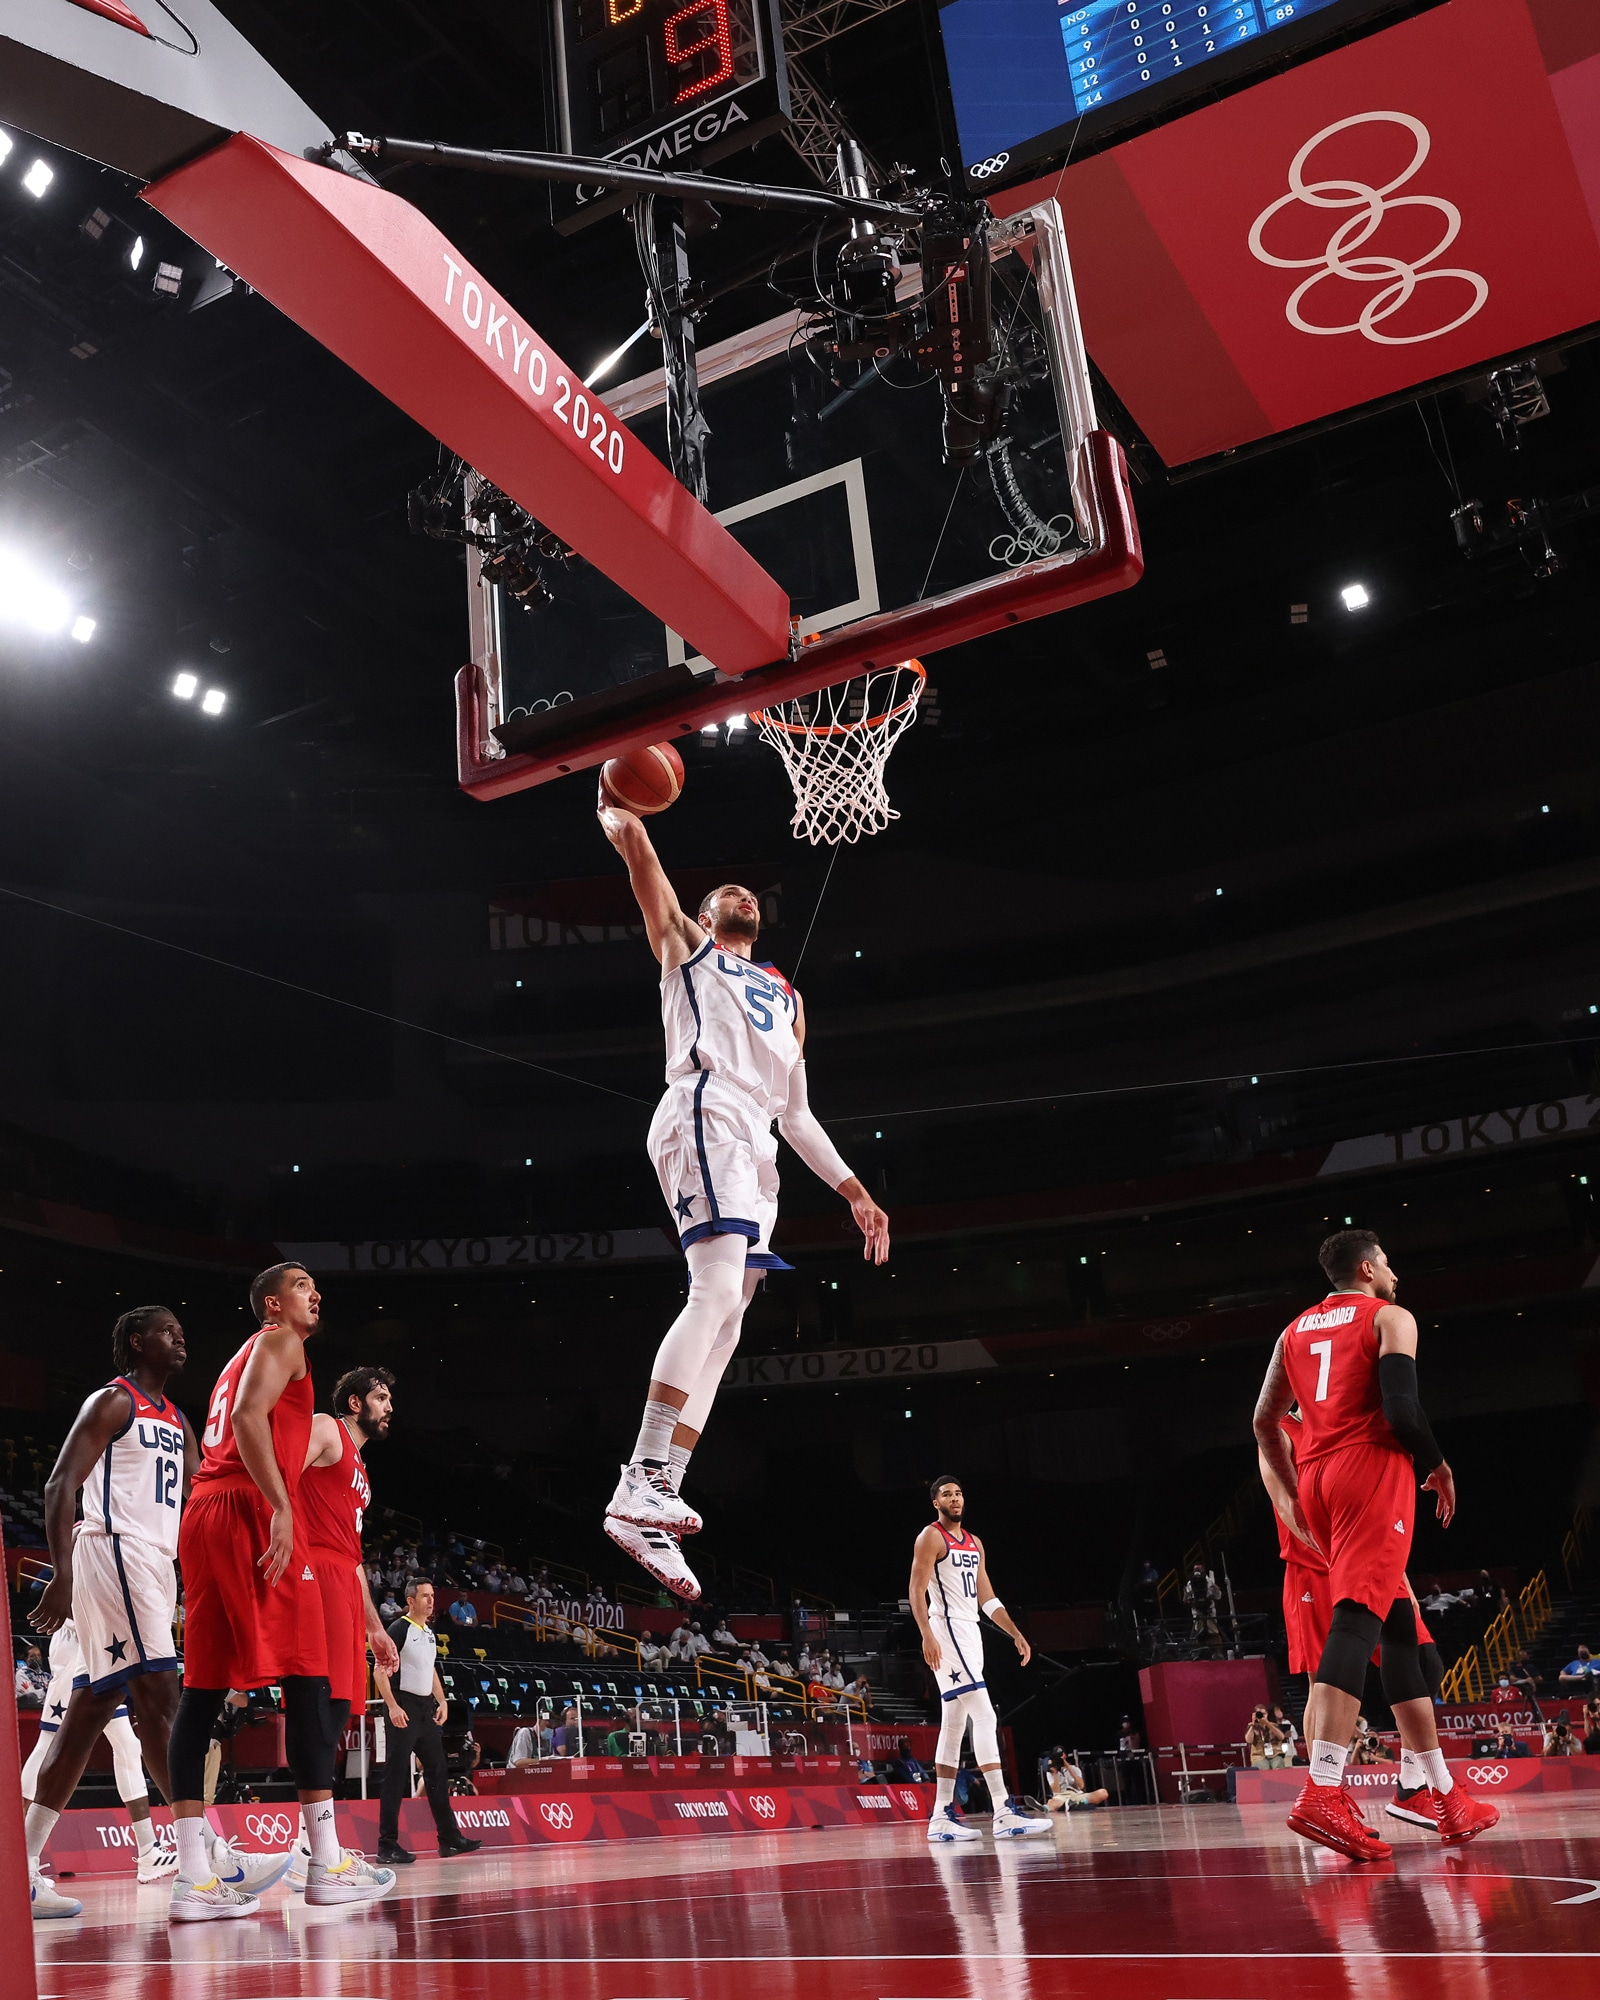 Zach LaVine elevates for a dunk as Team USA dominates Iran in Olympic pool play.